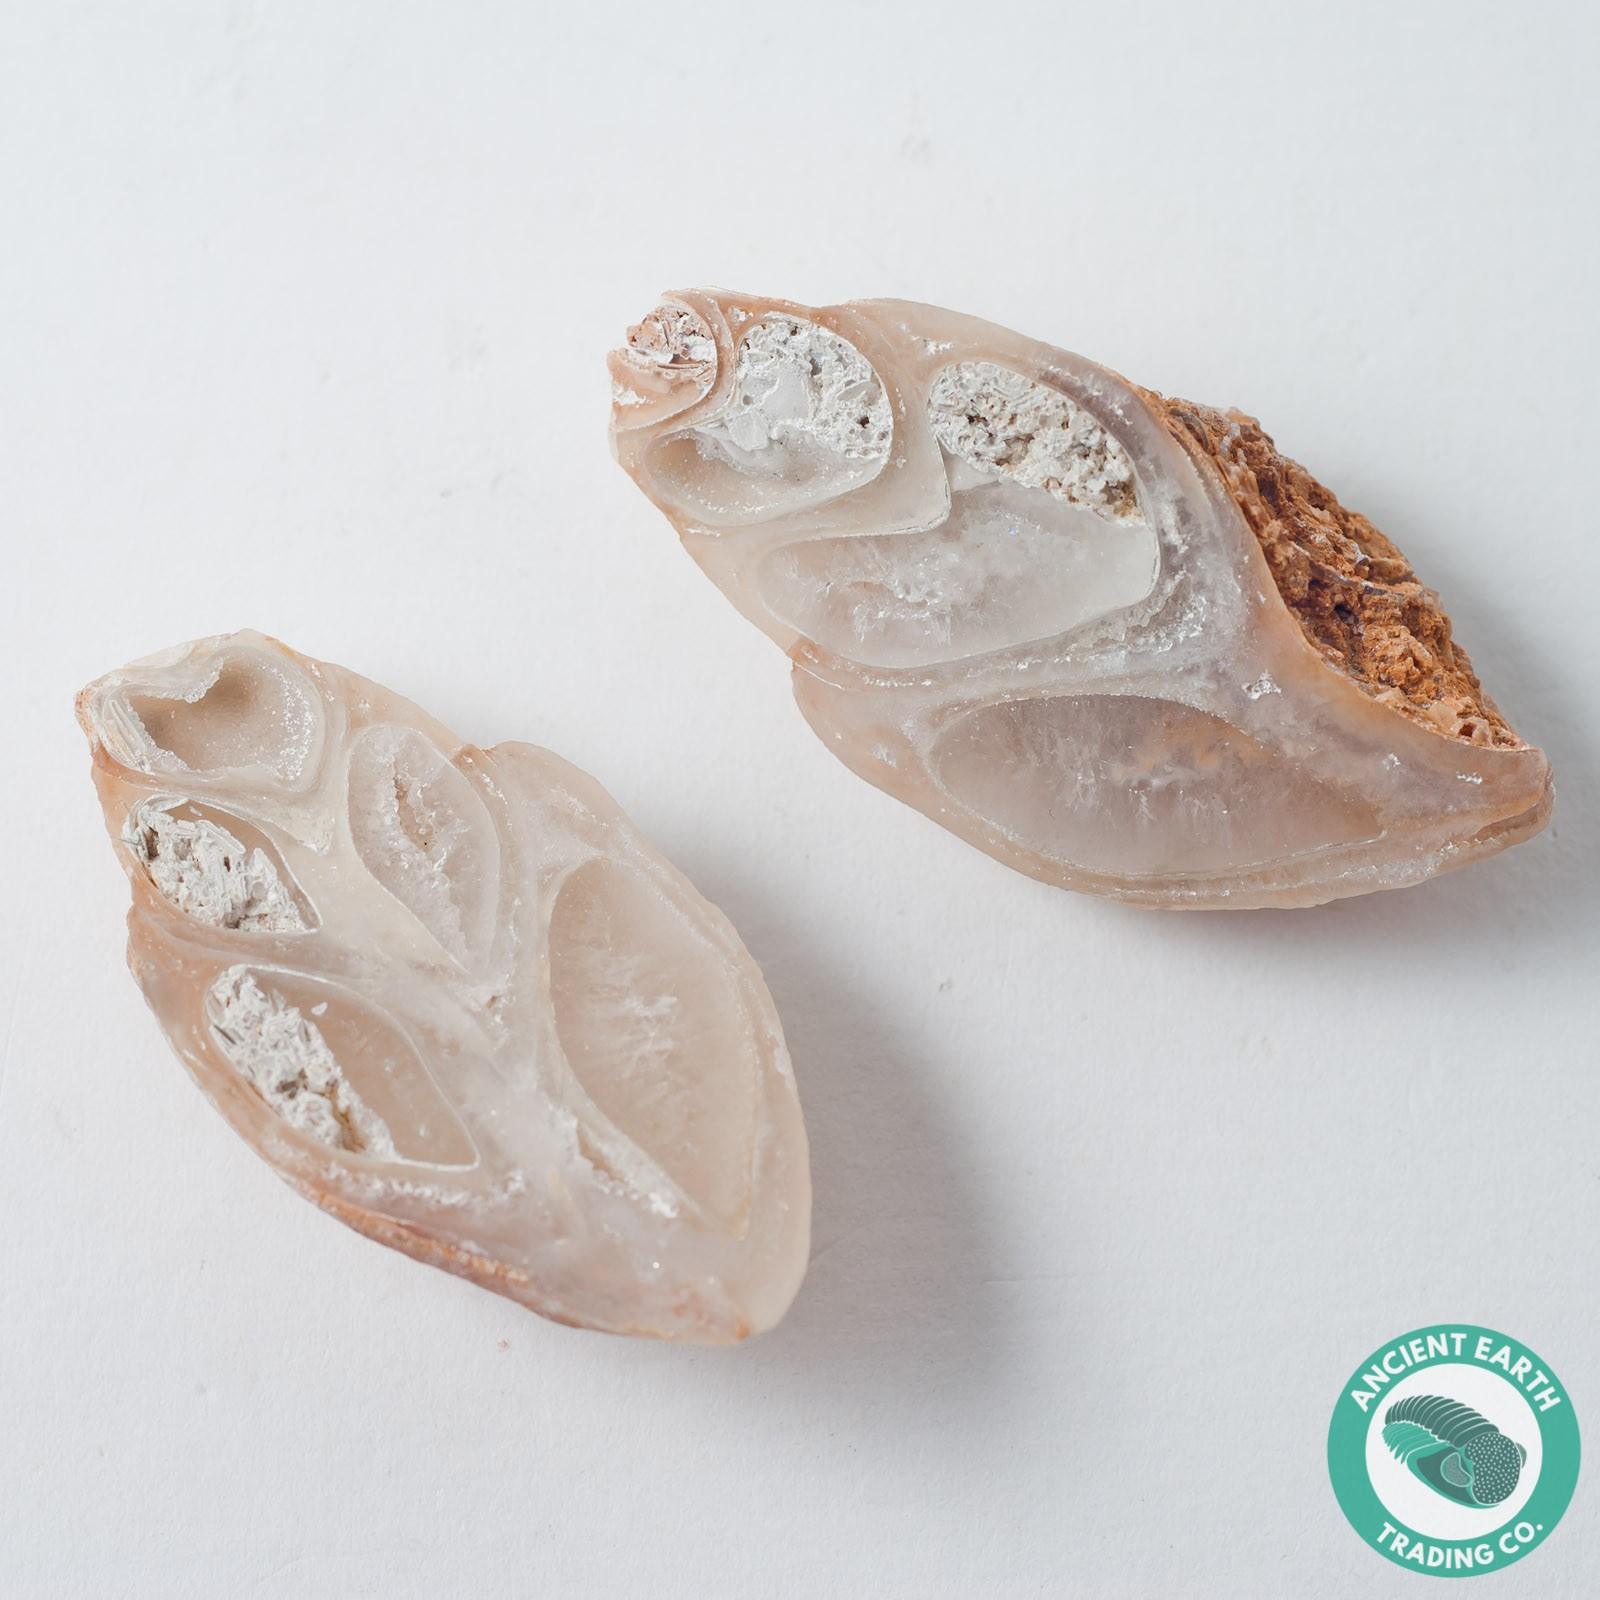 1.87 in Polished Agate Split Pair Gastropod from Western Sahara